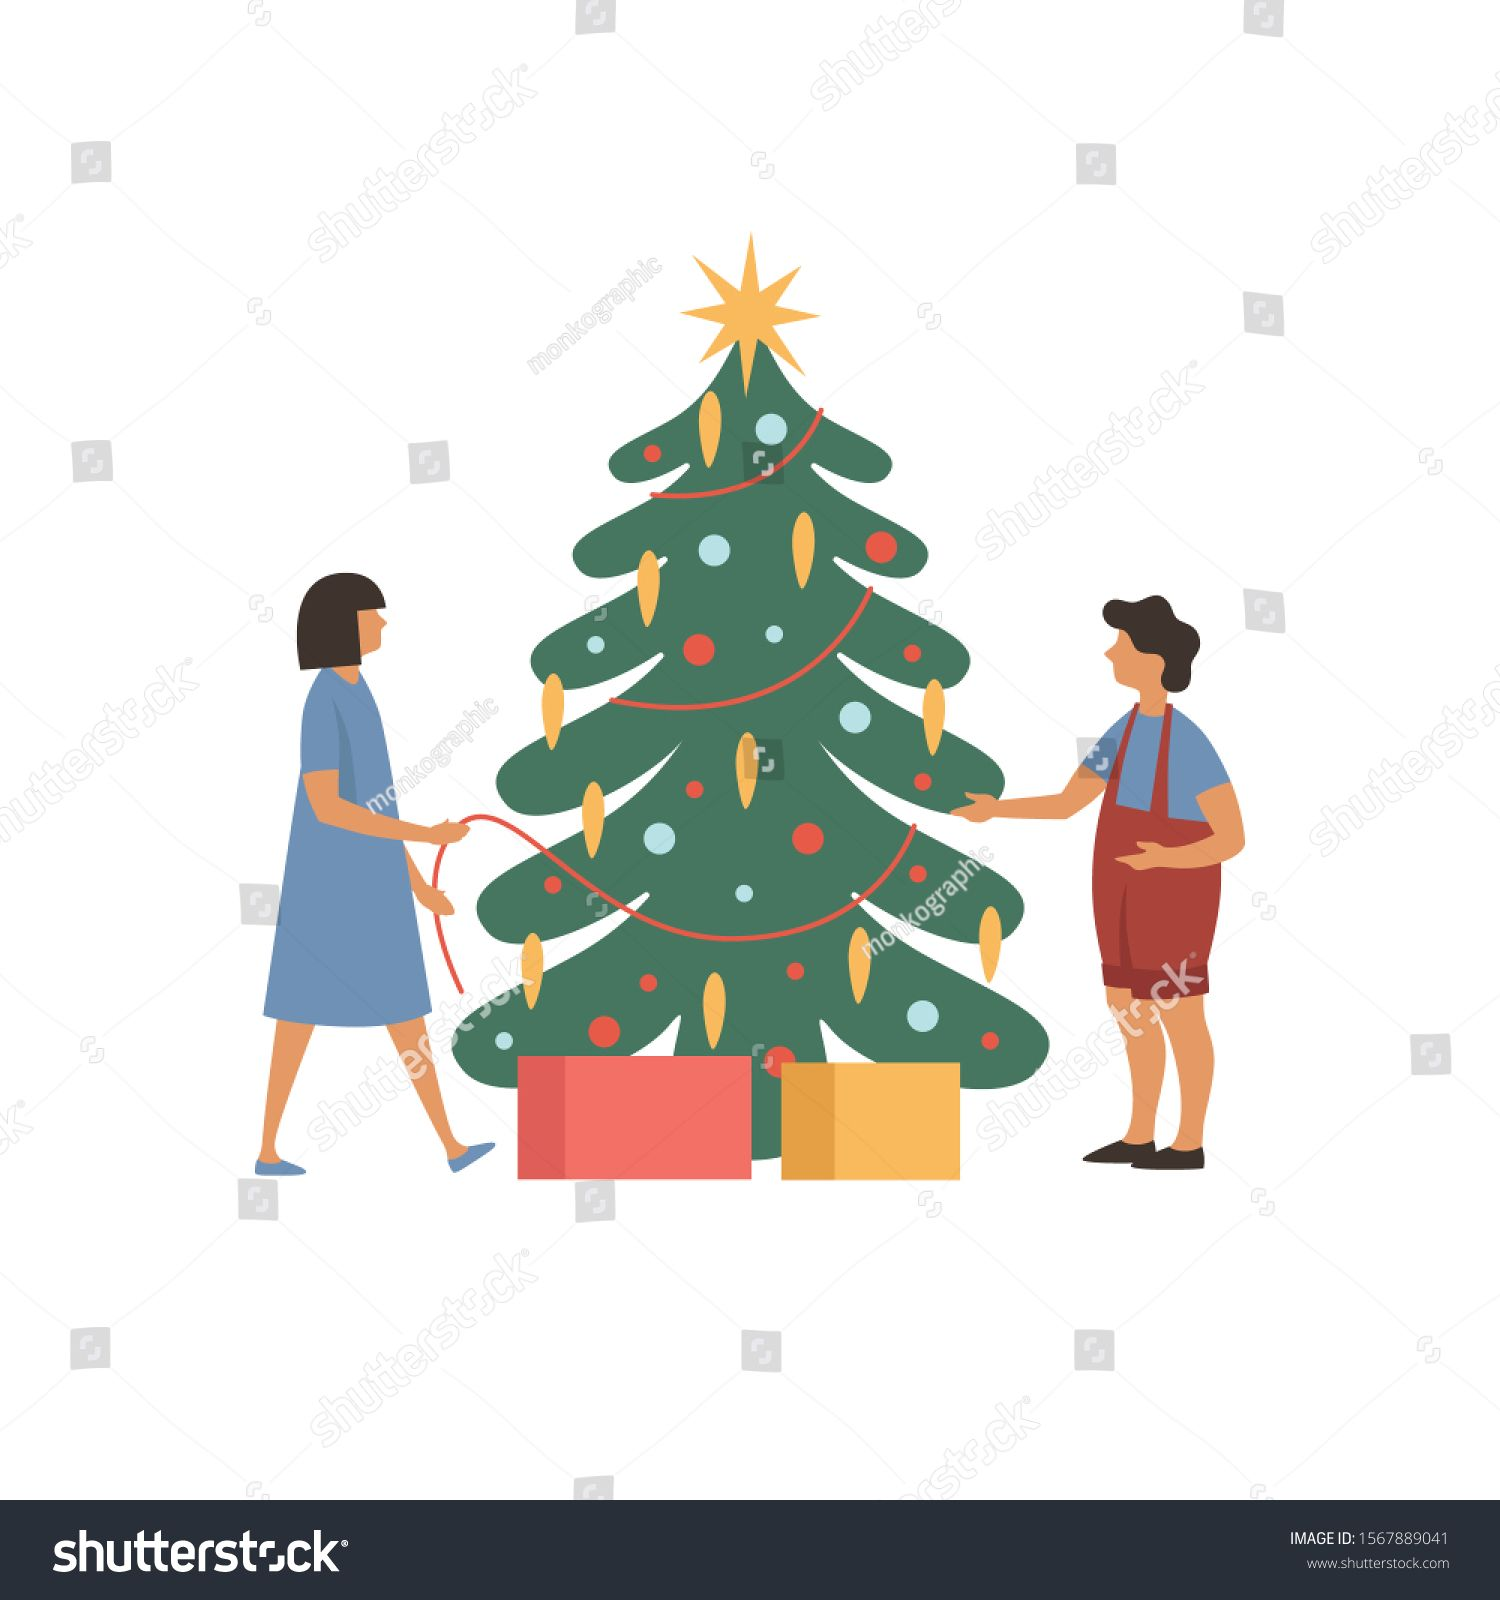 Cartoon Kids Decorate A Christmas Tree Preparing For The New Year Holidays Xmas Tradition And Winter Holid Christmas Tree Decorations Kids Decor Cartoon Kids Download 2,504 cartoon christmas tree free vectors. cartoon kids decorate a christmas tree